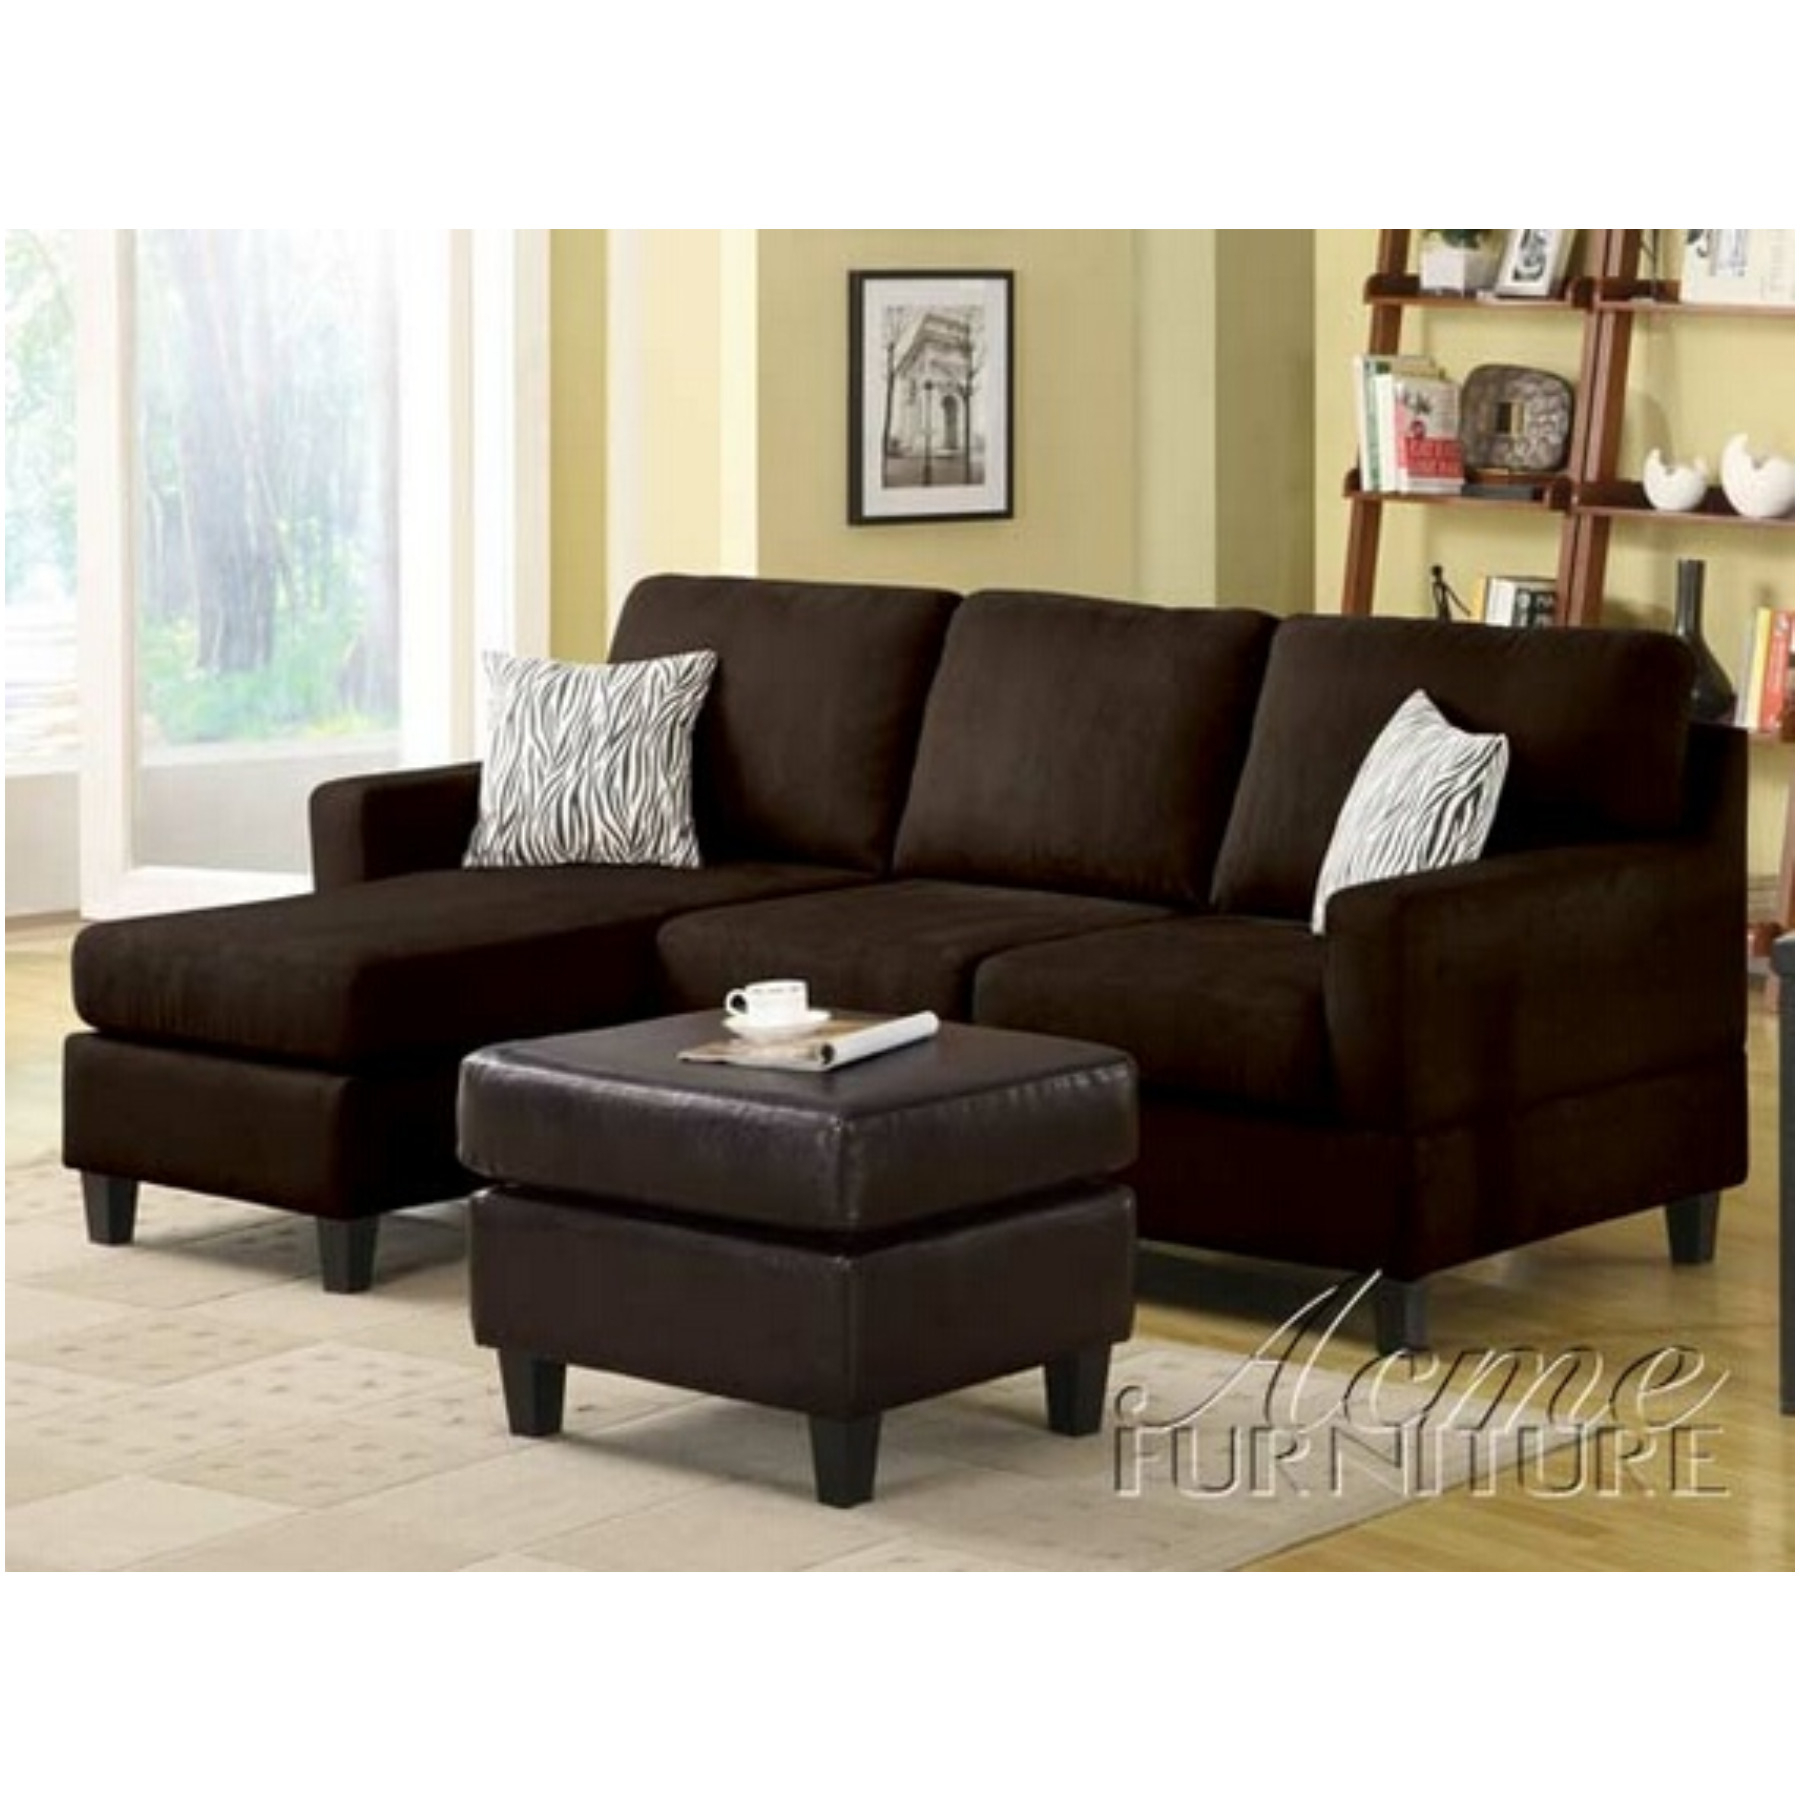 Mcdade Graphite 2 Piece Sectional – Geek Tattoos In Mcdade Graphite Sofa Chairs (Image 13 of 25)